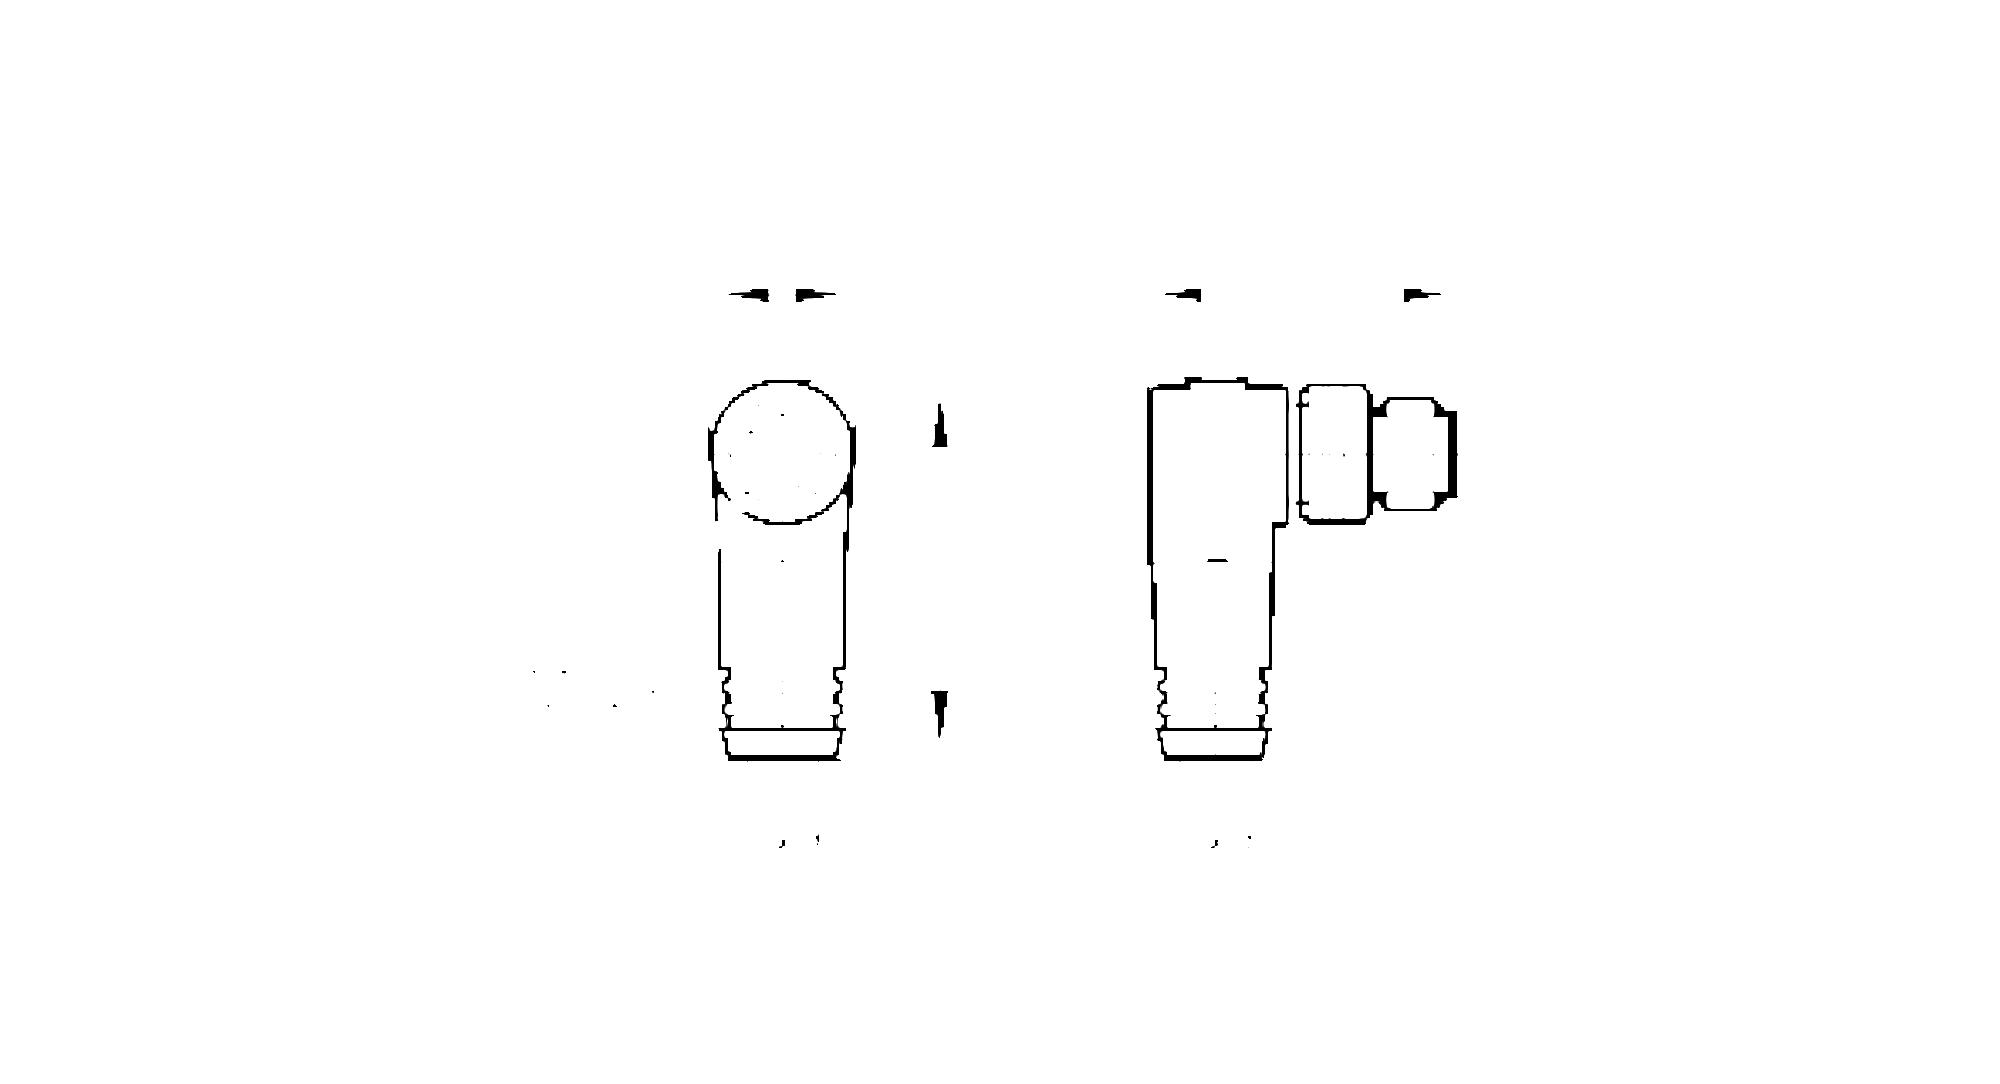 e12215 - connecting cable with plug